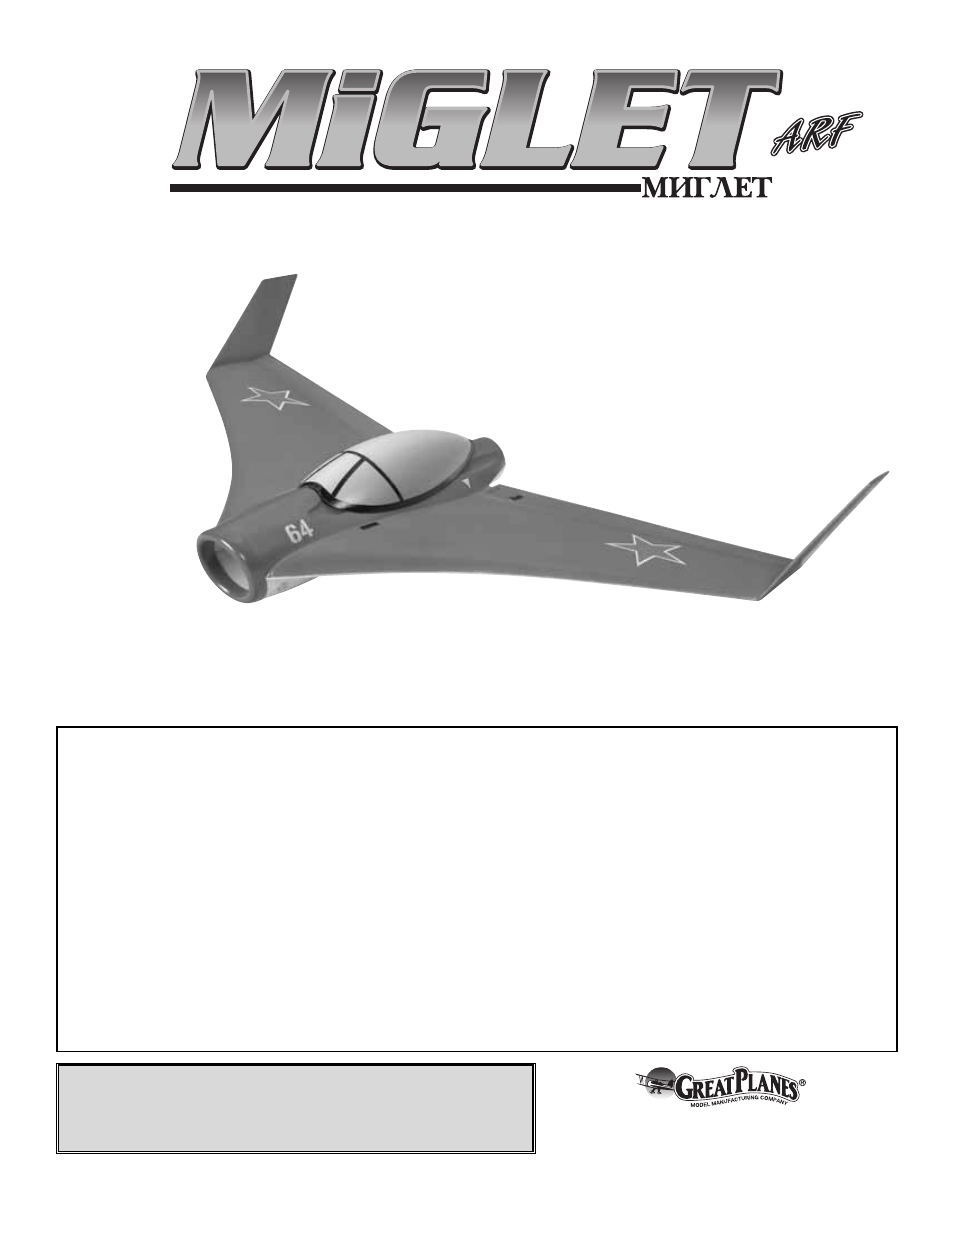 Great Planes MiGLET Ducted Fan ARF - GPMA1866 User Manual